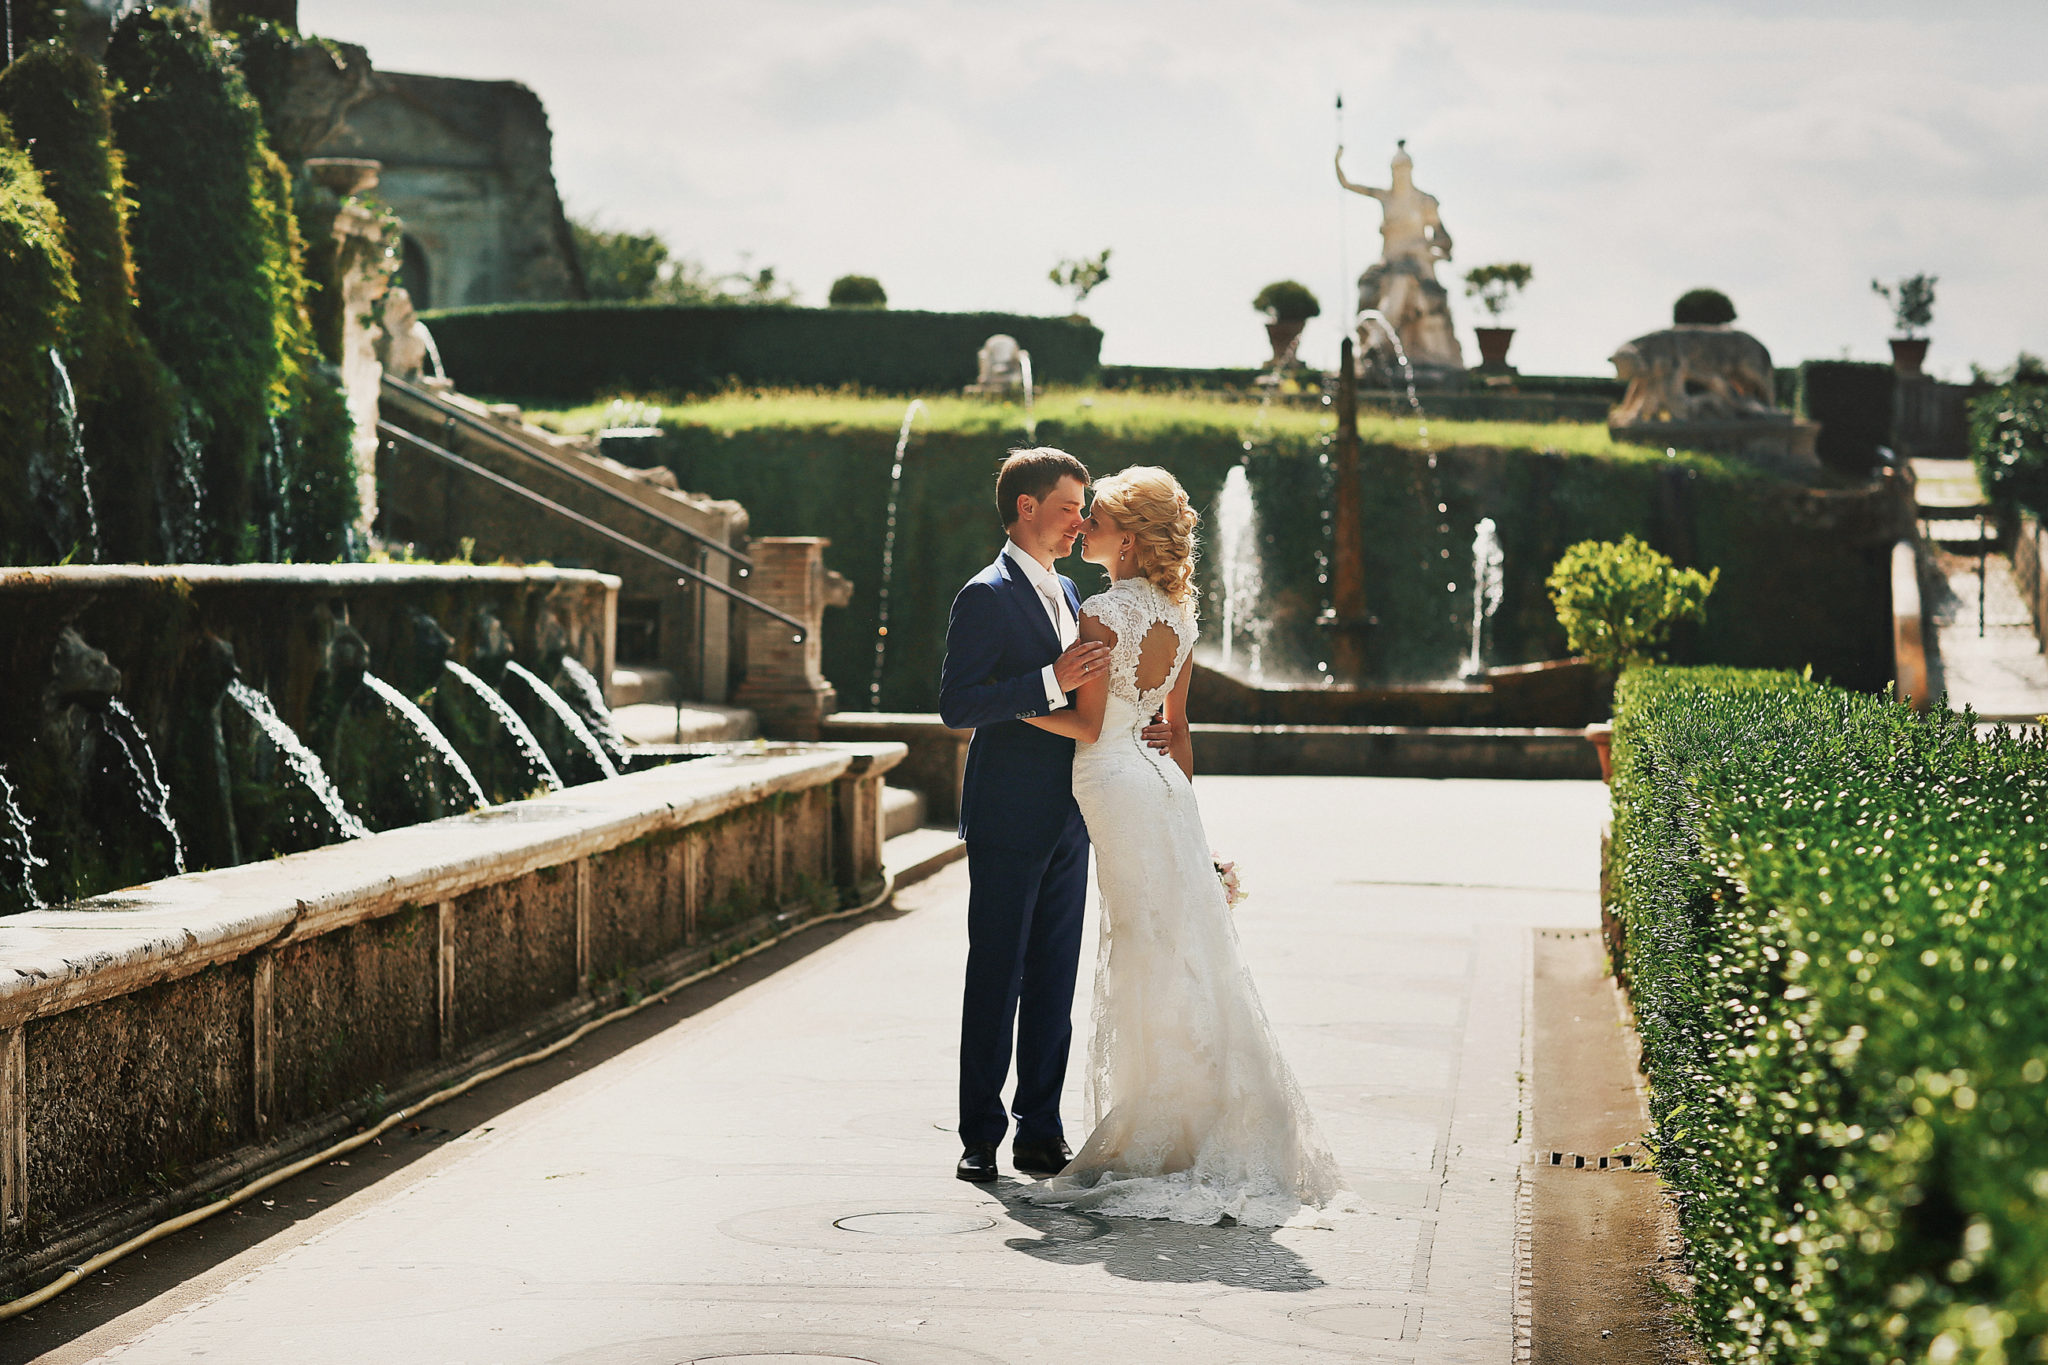 5 Wedding Venues in Rome Perfect for Destination Weddings ~ Part 1